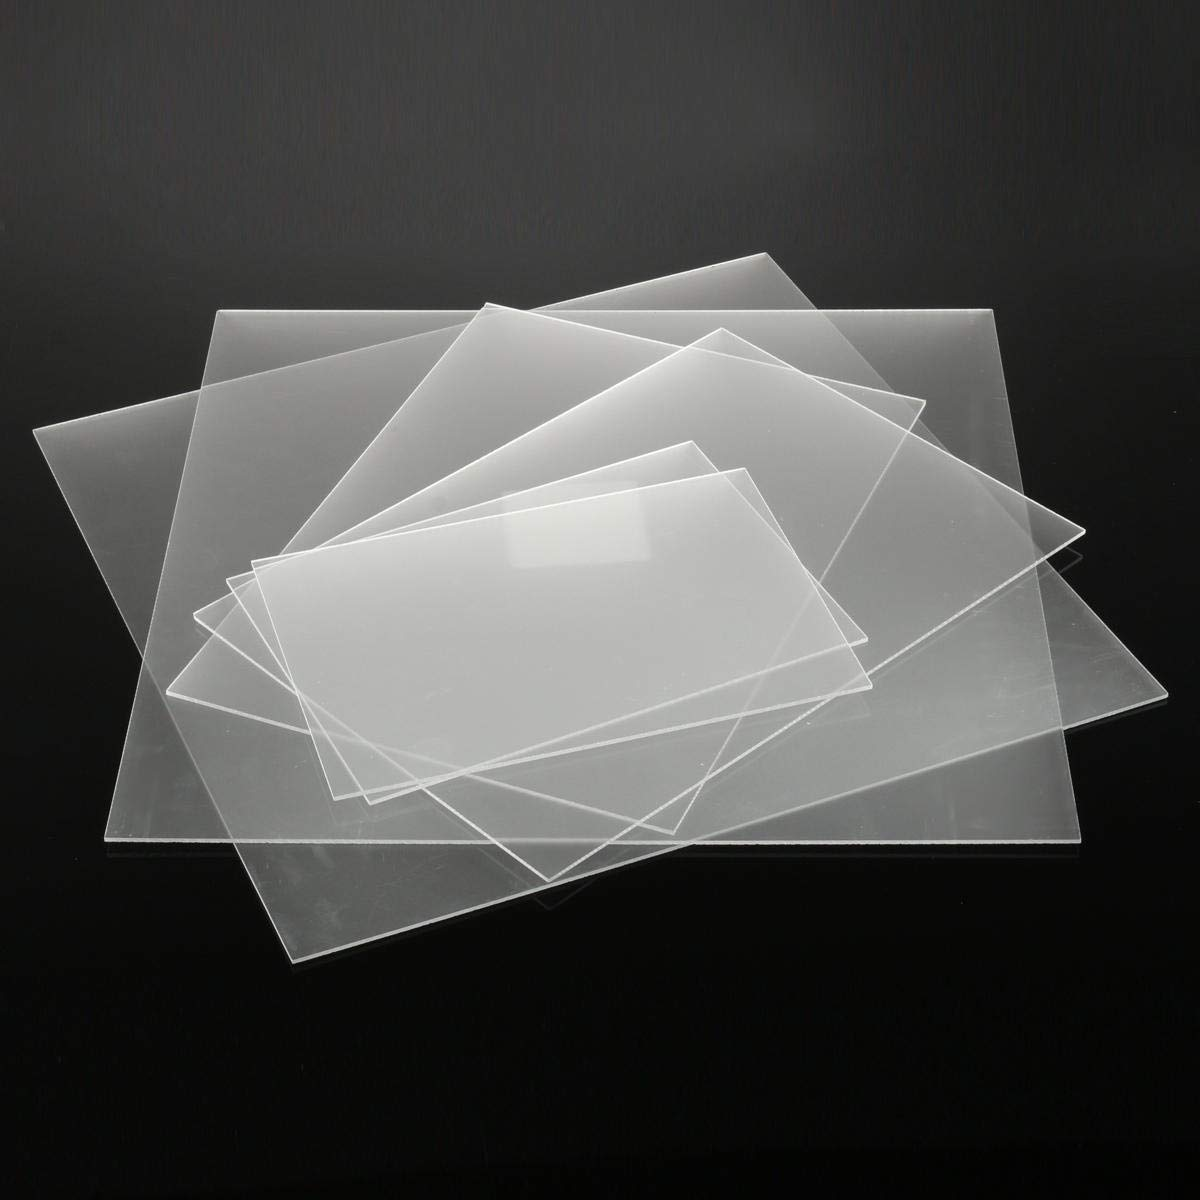 Stock_Home, Raw Materials, 3mm One-Sized Frosted Acrylic Sheet Clear Satin Matte Finish Plastic Panel 6 Sizes - (Size: #3)